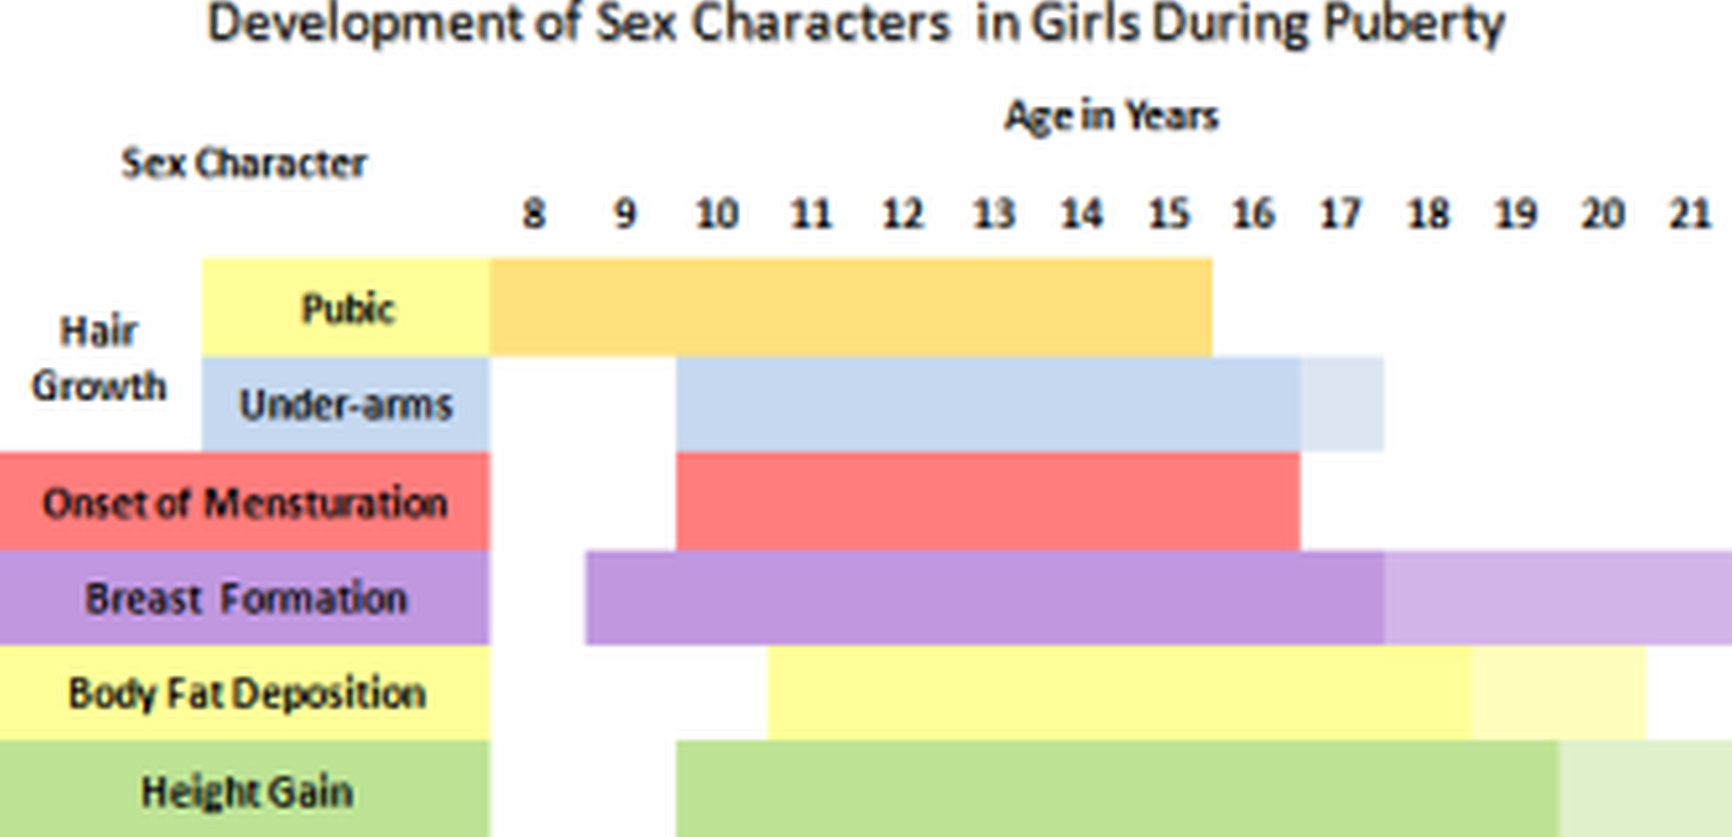 Female primary sex characteristics